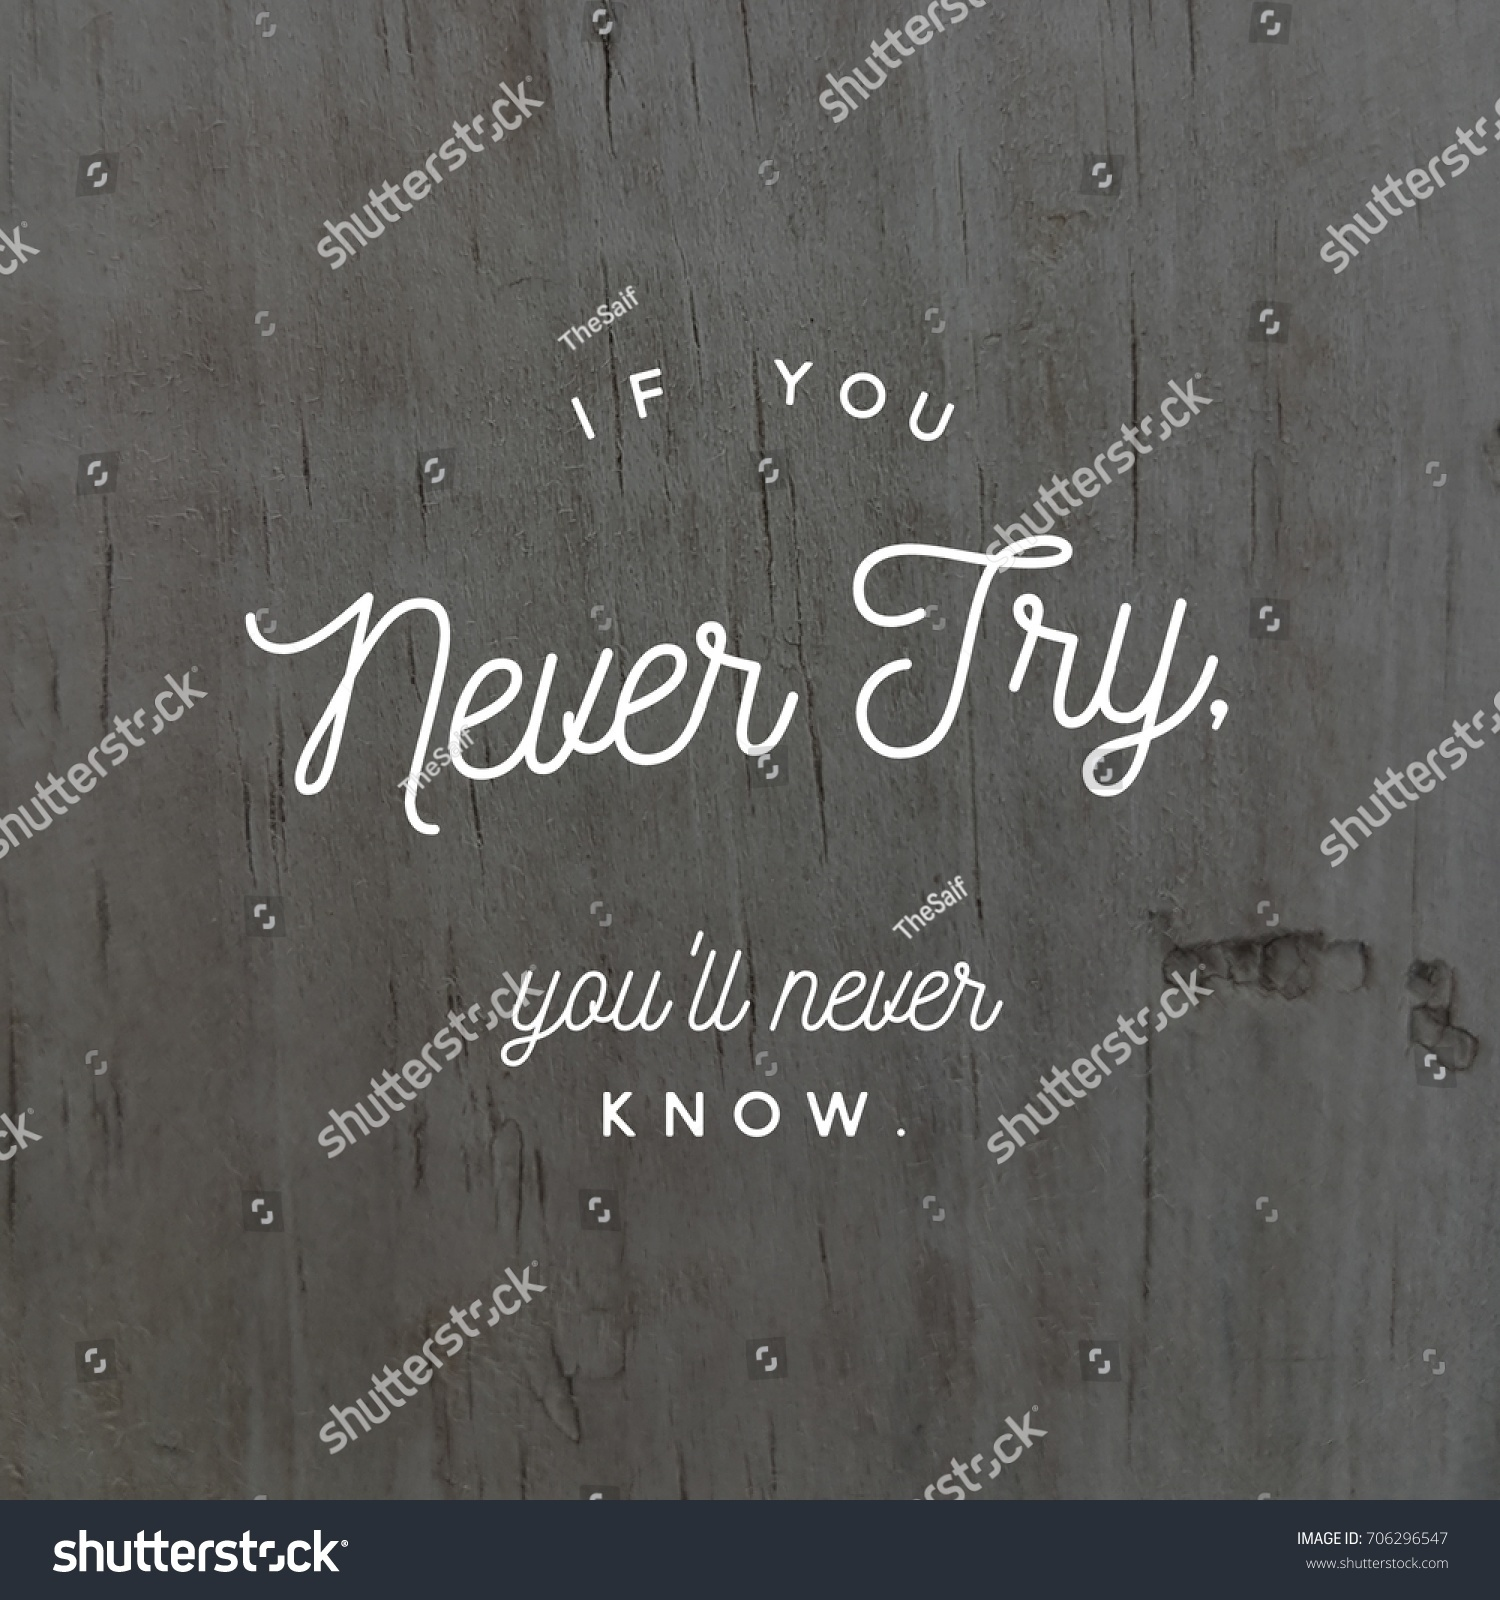 Sayings On Life Inspirational Quotes Quote Best Inspirational Motivational Quotes Sayings Stock Photo